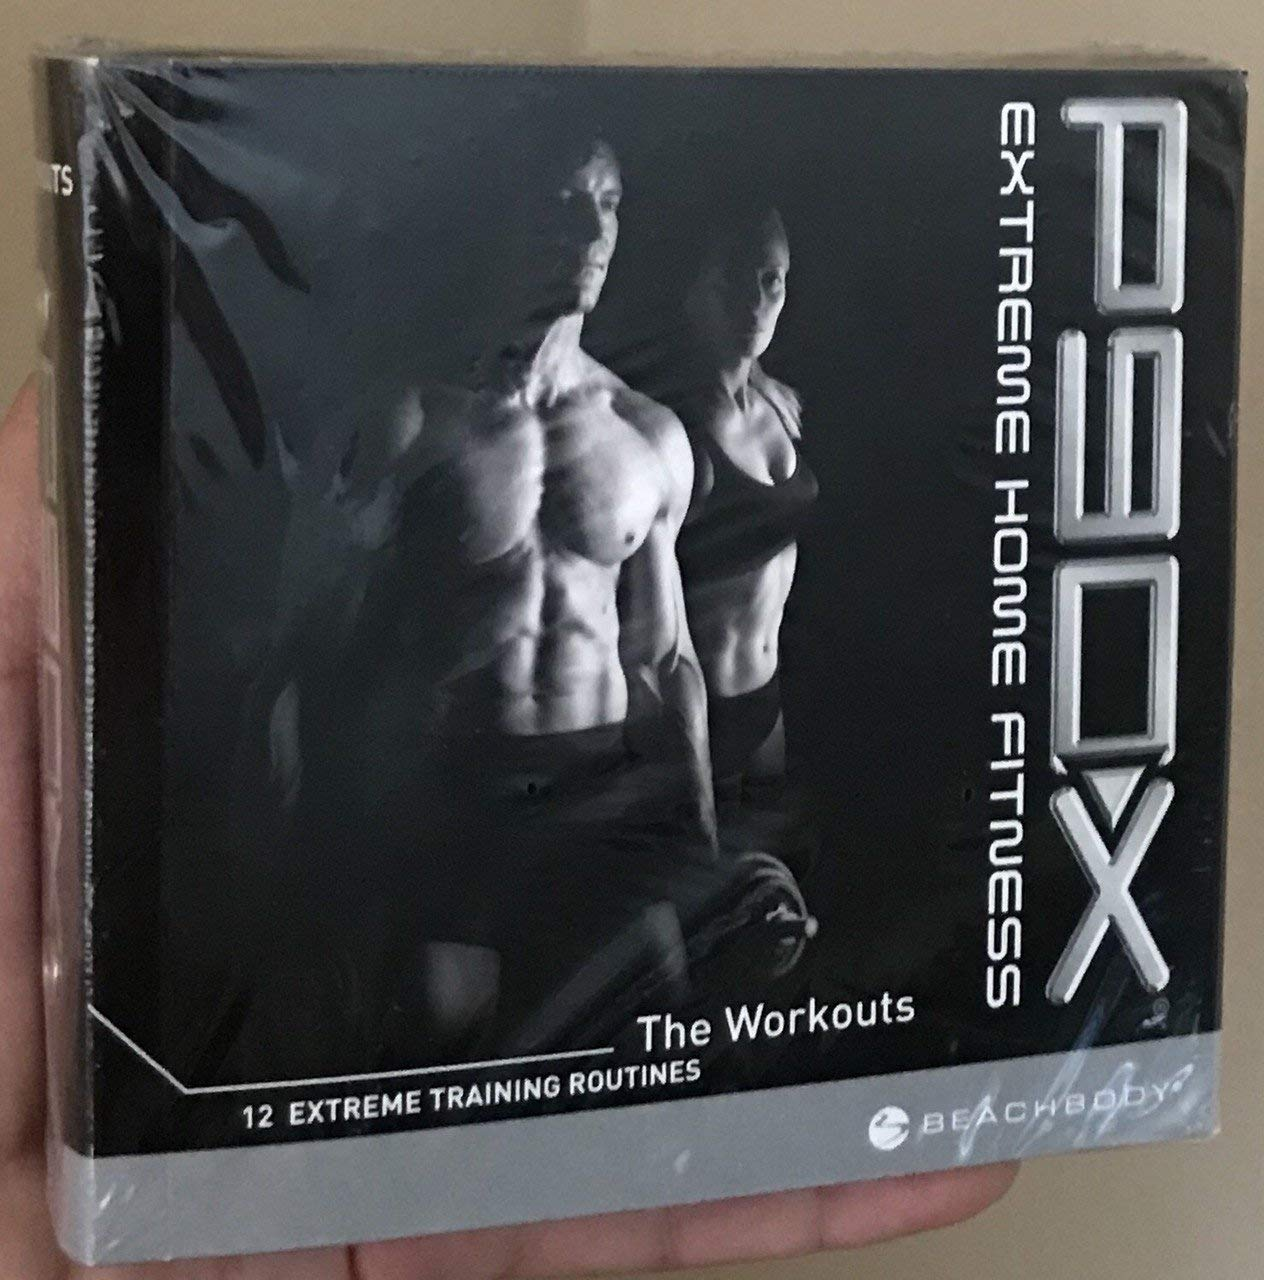 P90X EXTREME HOME FITNESS WORKOUT 12 TRAINING ROUTINES CARDIO INTERVALS TONY HORTON